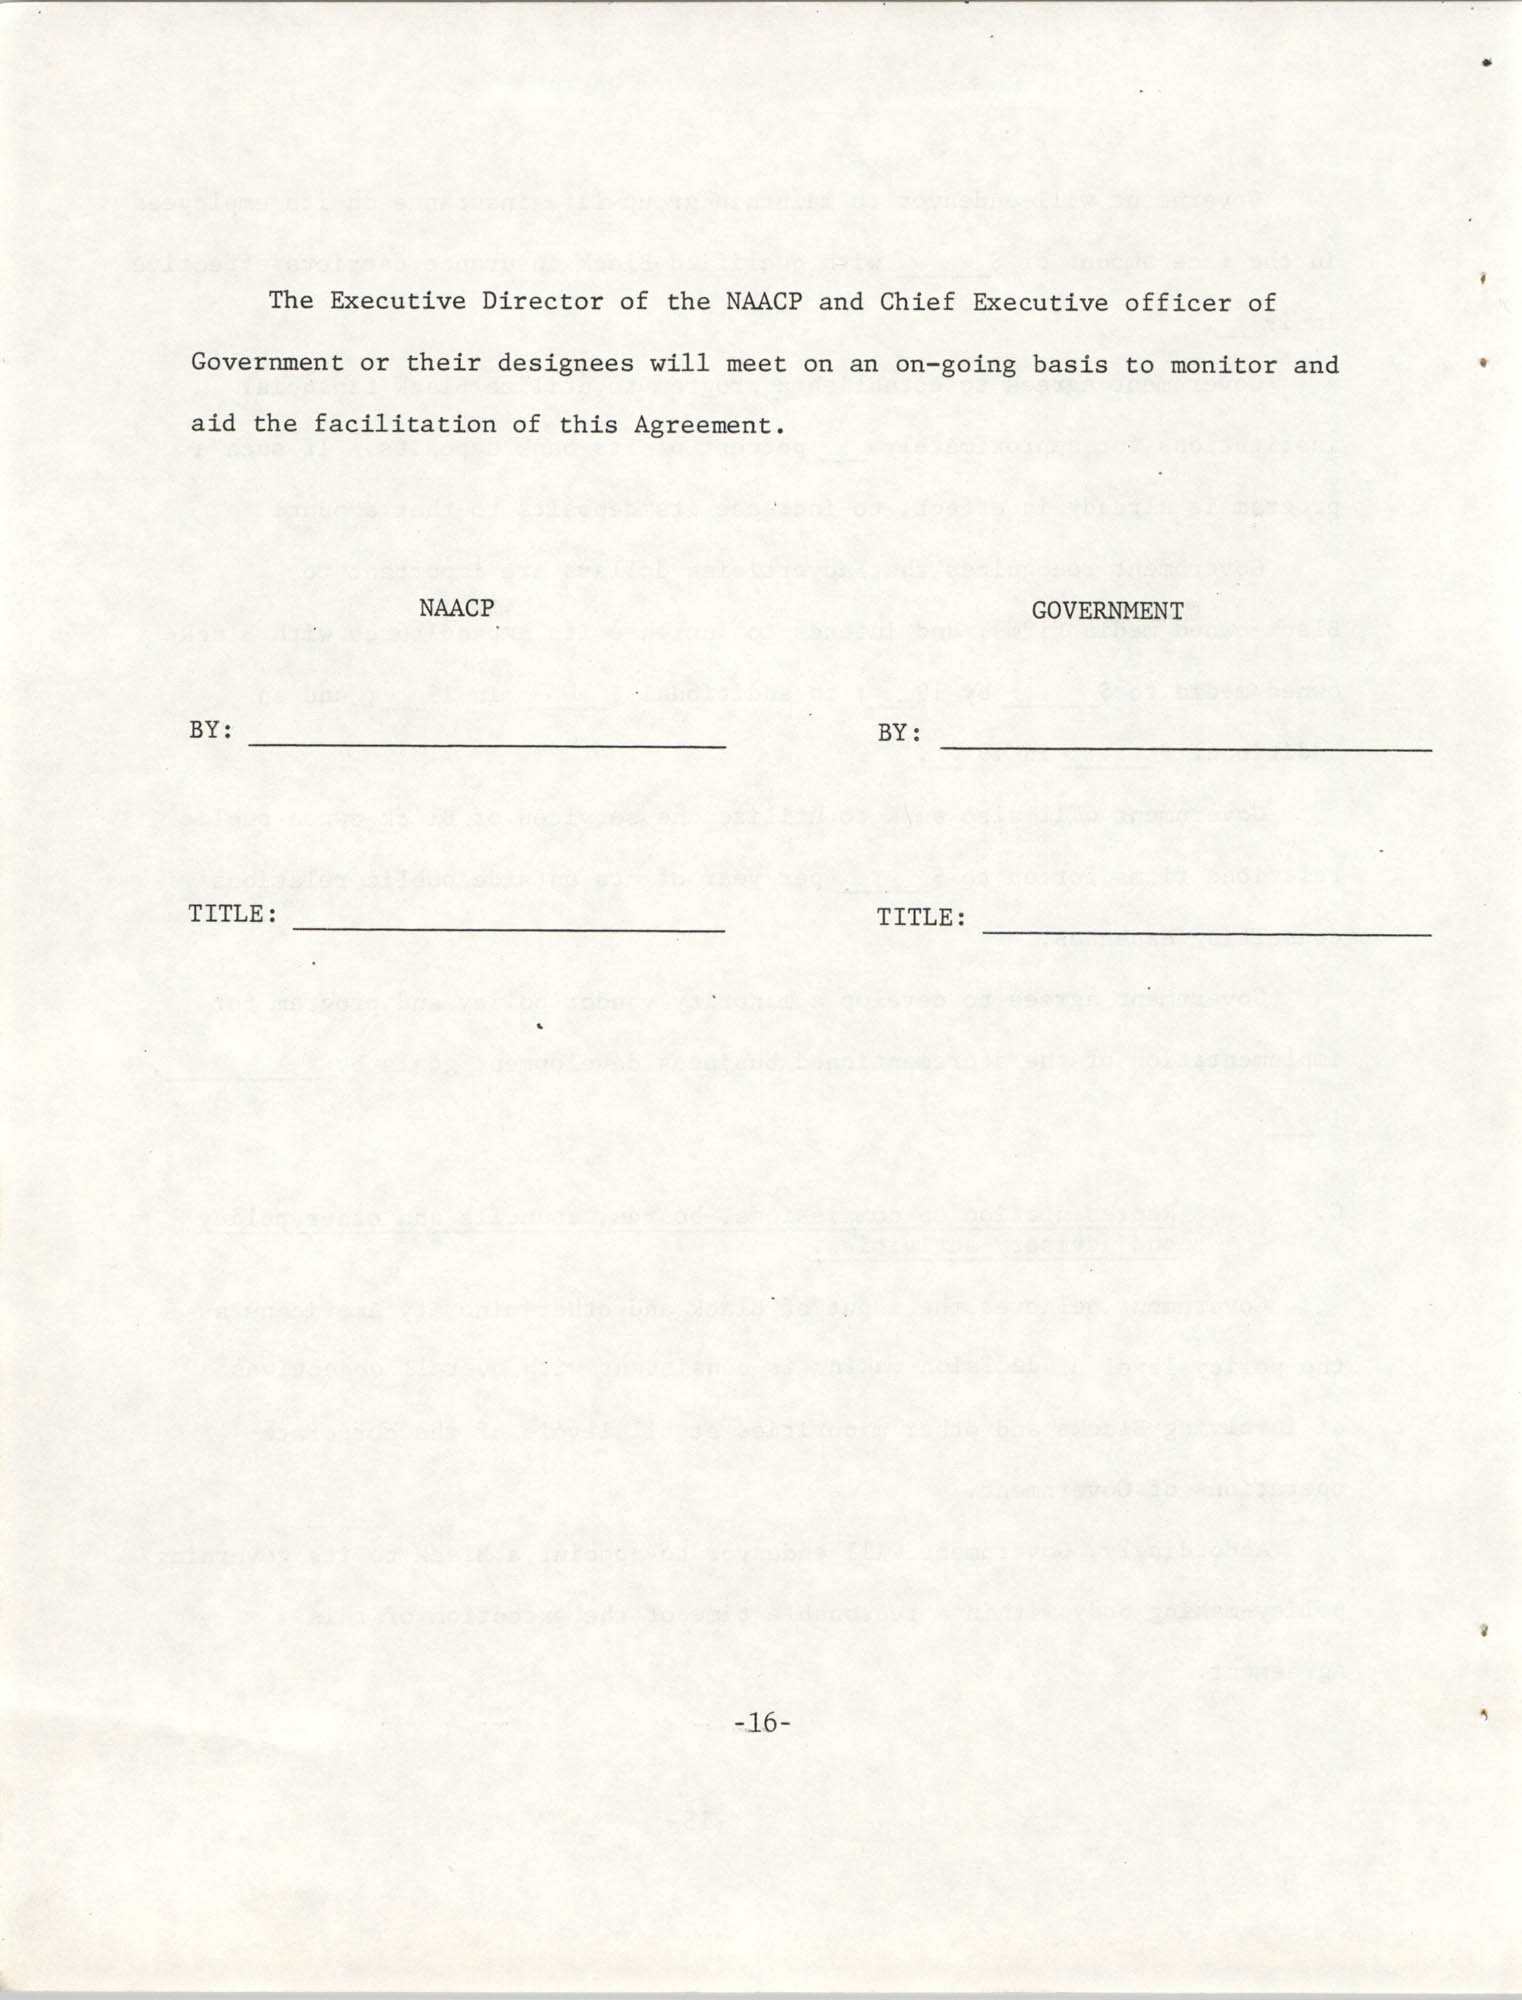 Governmental Fair Share Workshop for South Carolina Conference of Branches, October 11, 1985, Page 16